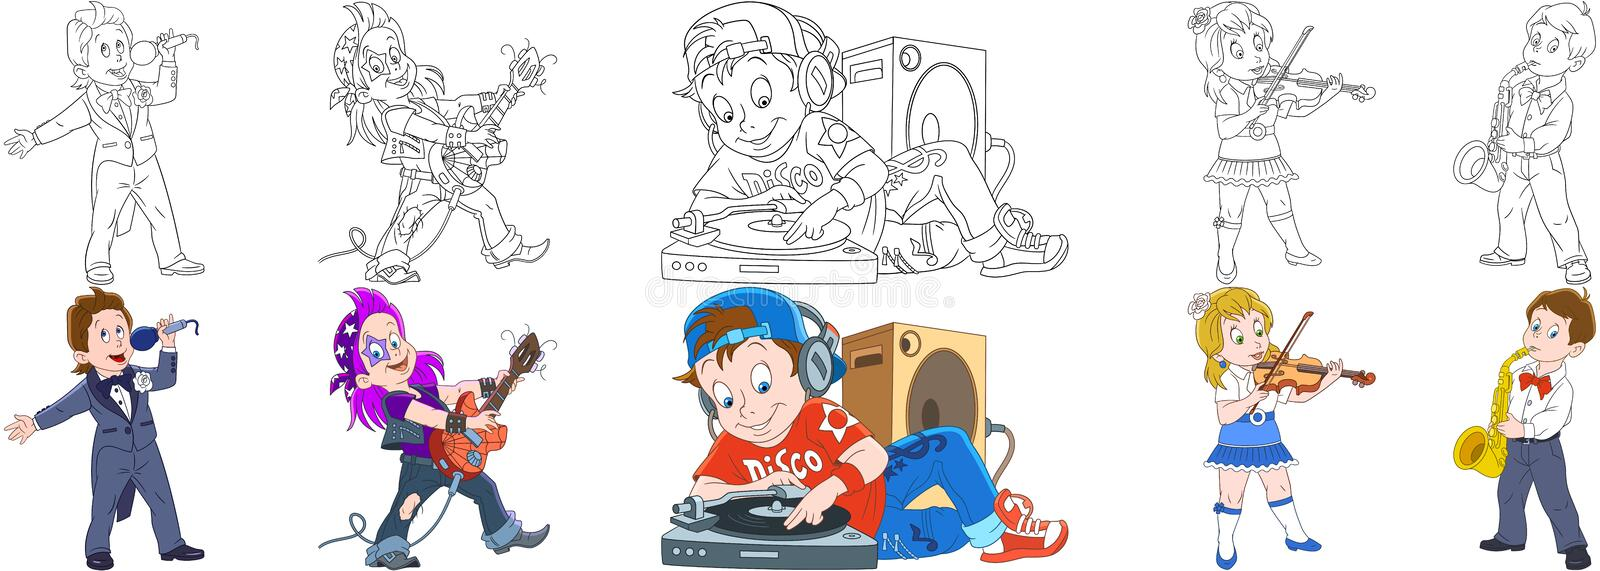 Cartoon musical professions set stock images